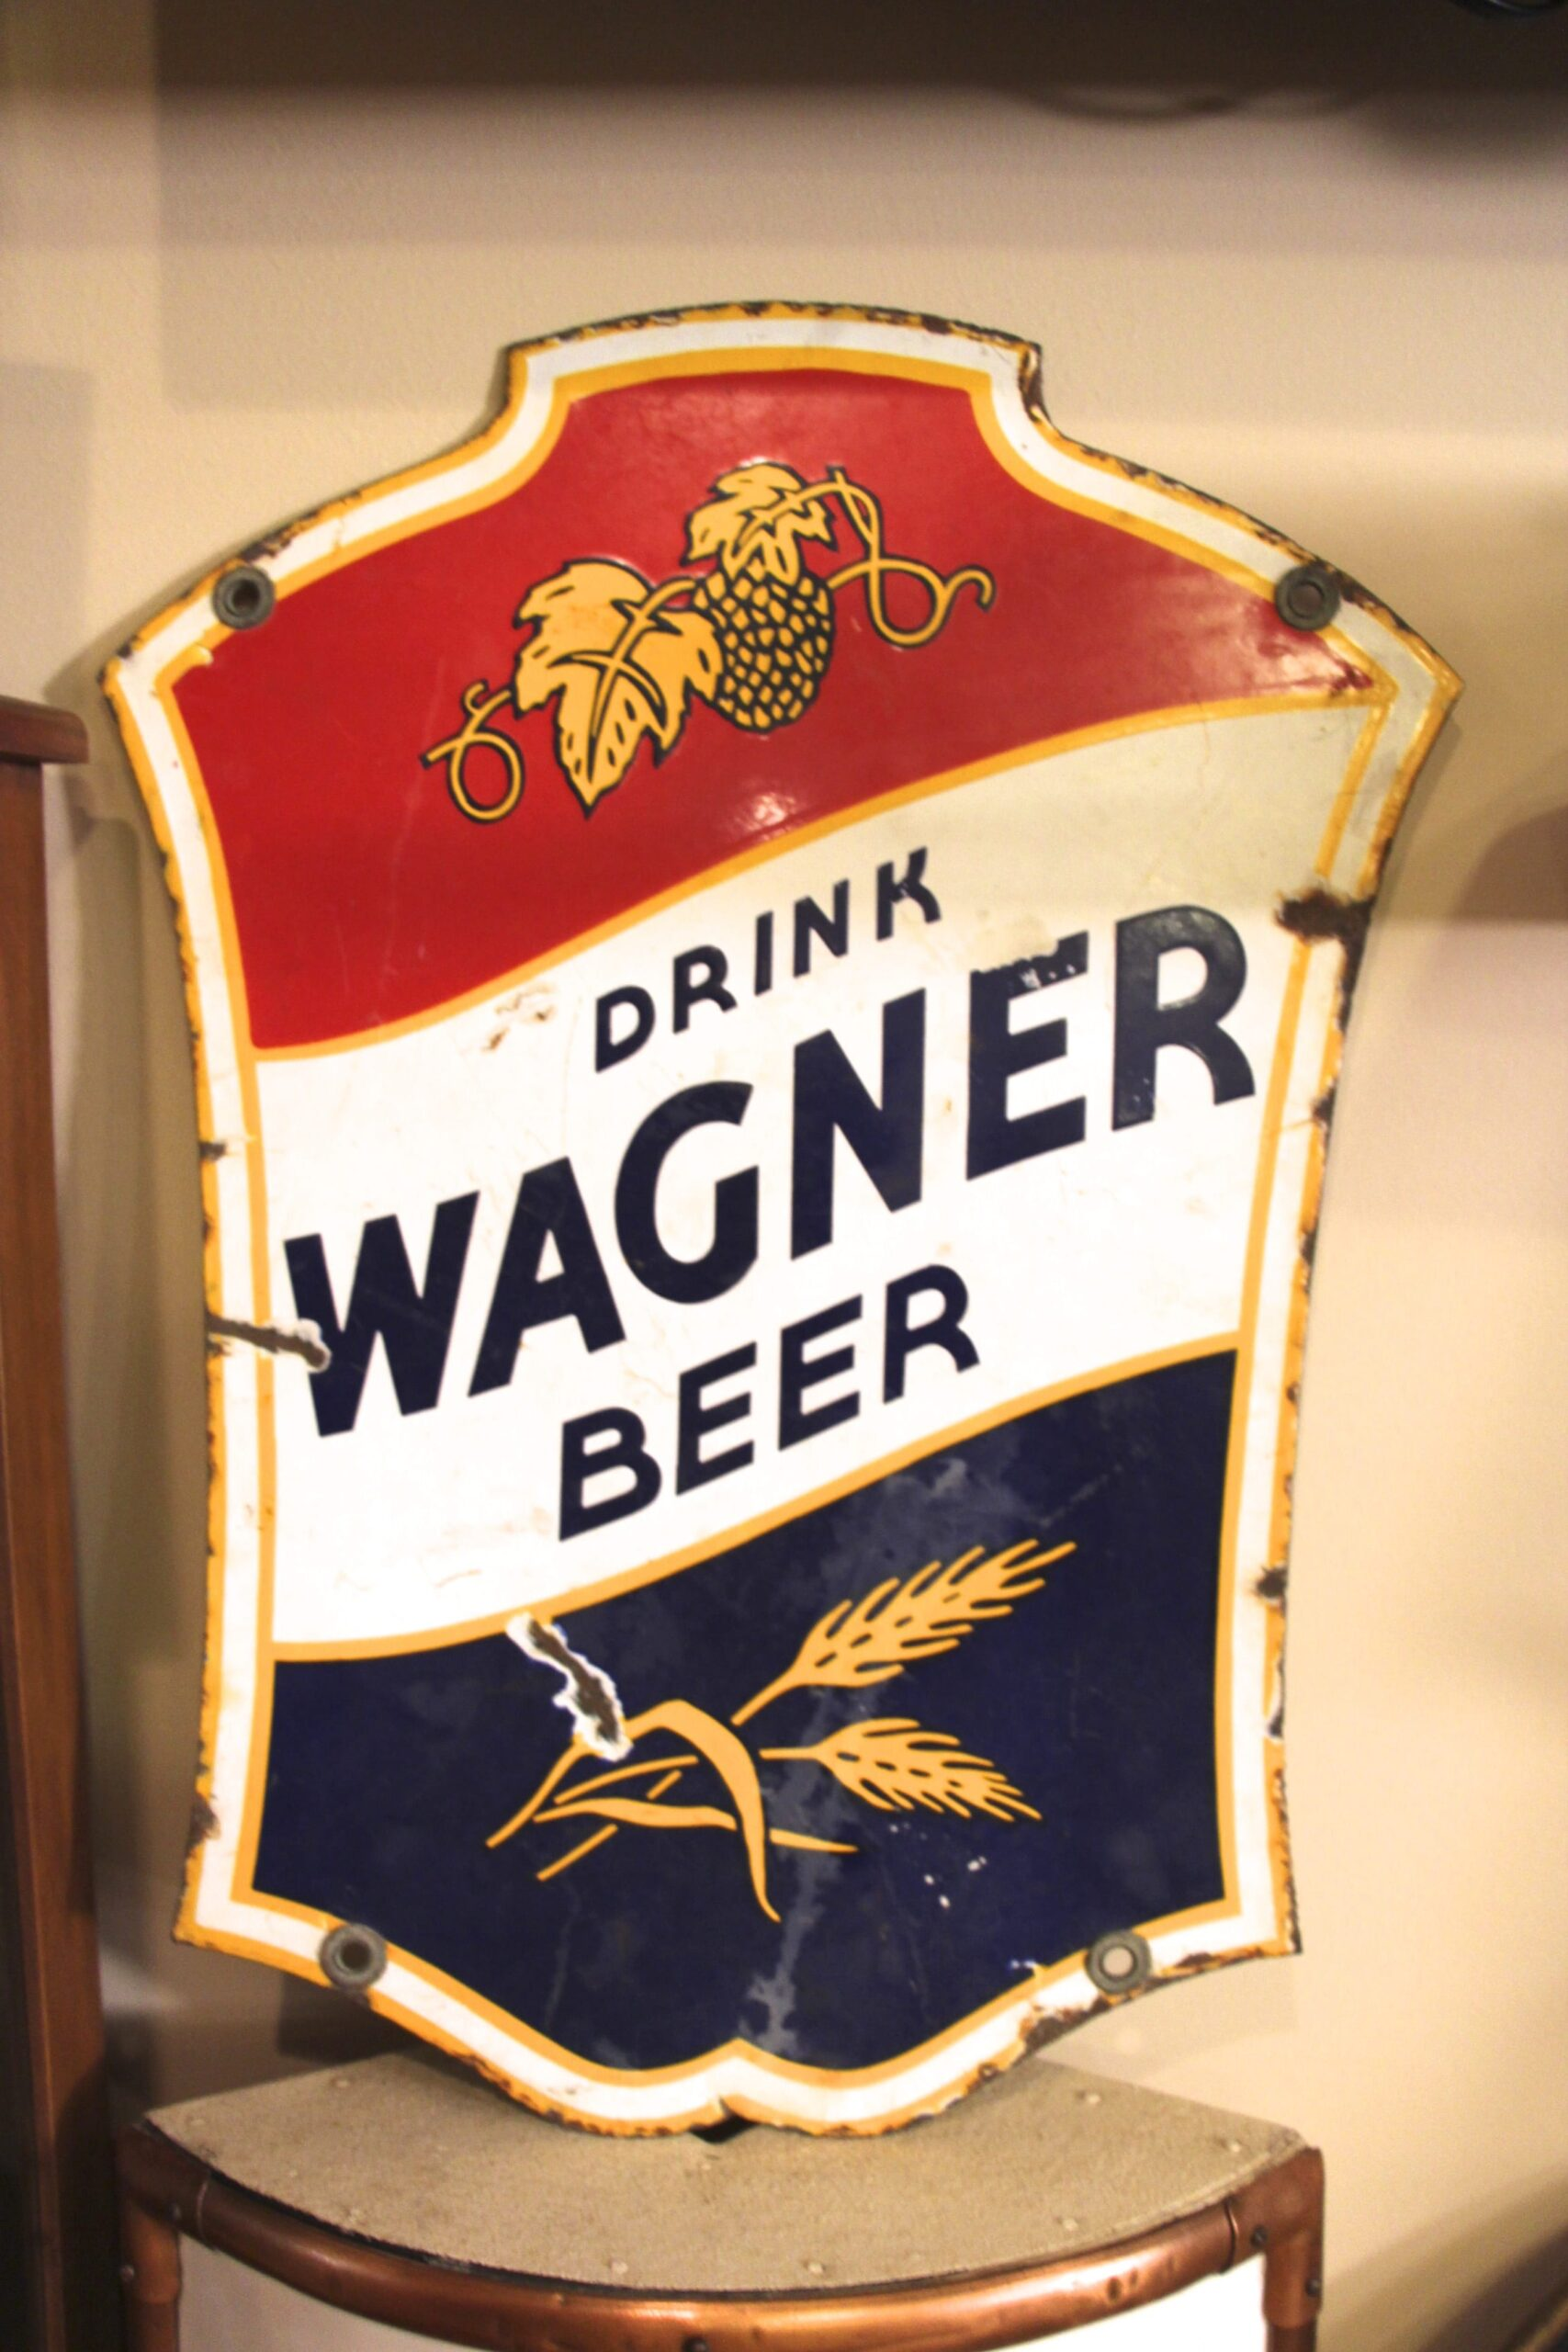 Wagner Beer Porcelain Sign, Granite City, IL